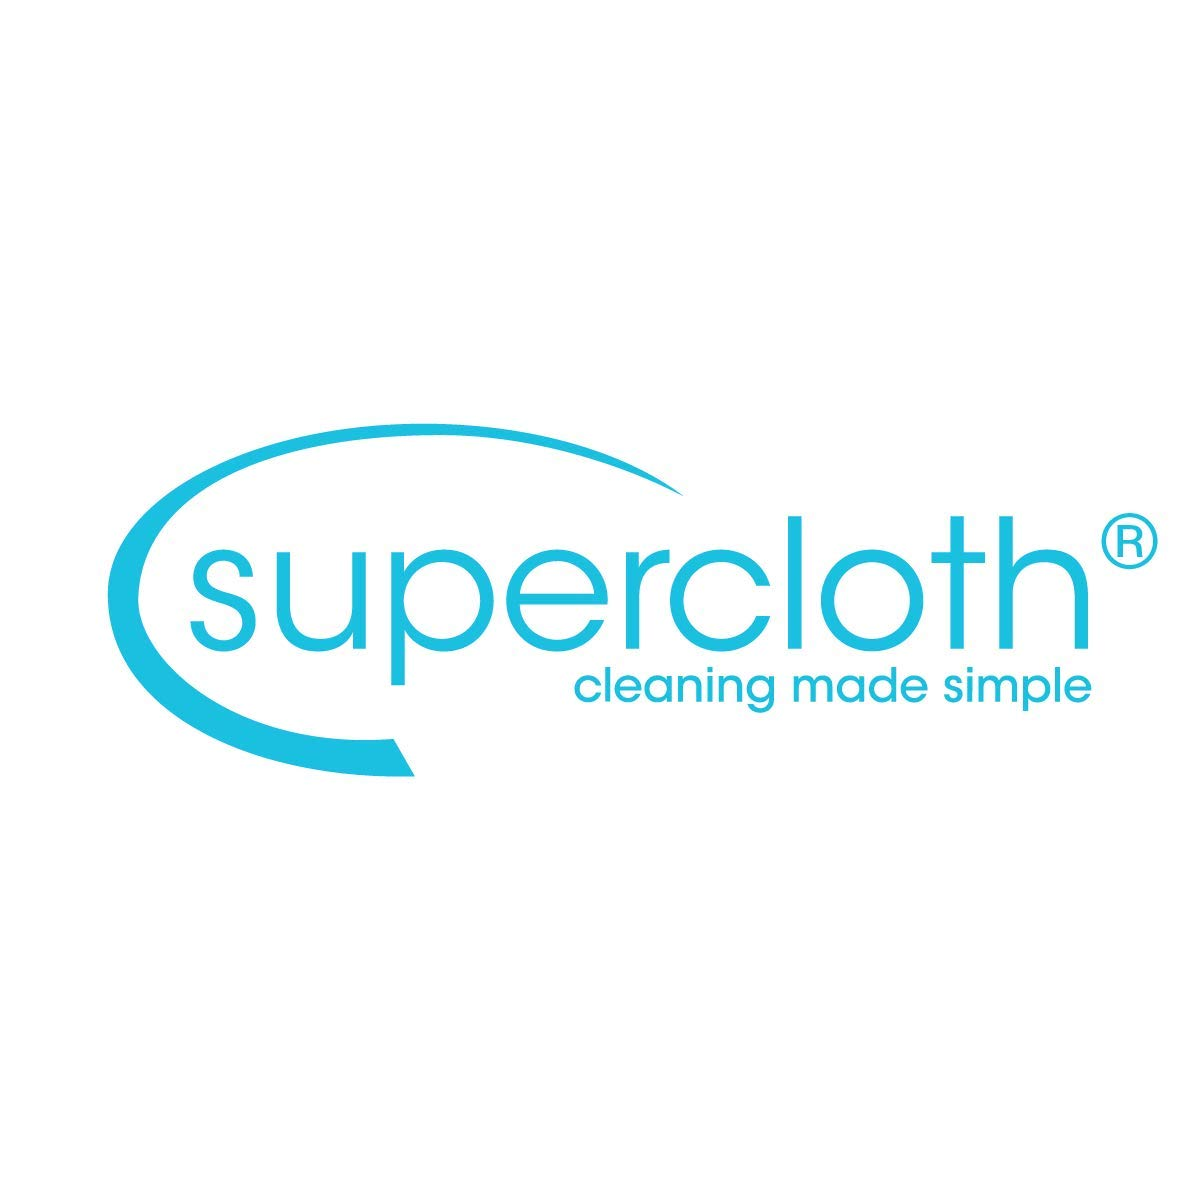 Supercloth - World Famous Household Cleaning Cloth and Dusting Cloth - Full Size, 5 Pack (2pk, 10pk Also Available) by Supercloth (Image #9)